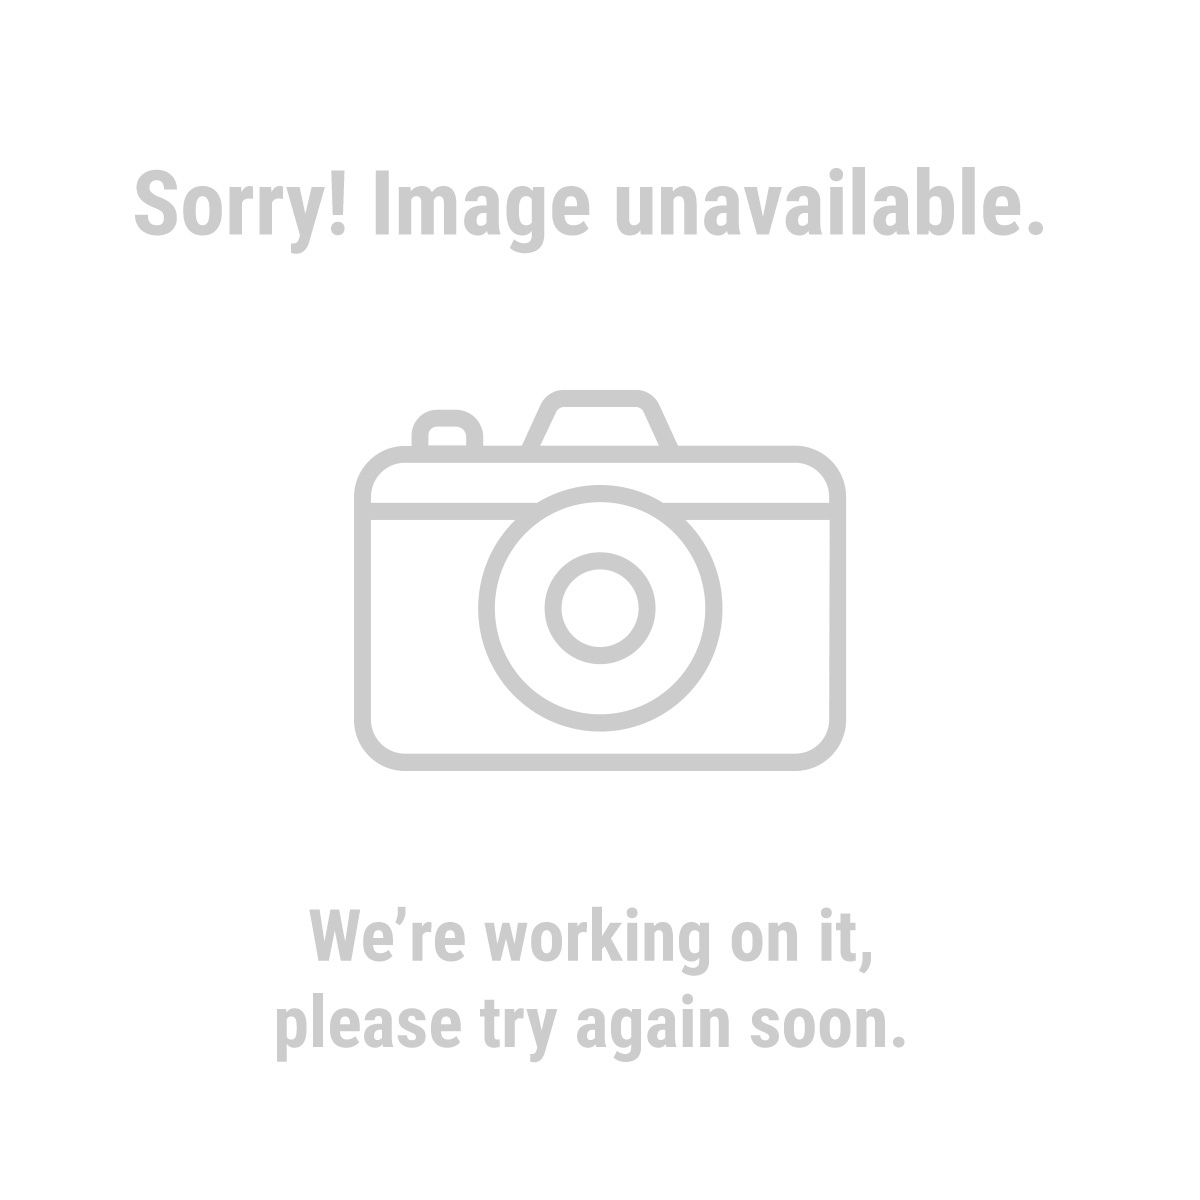 Central Machinery 67144 1/4 Ton Lever Chain Hoist